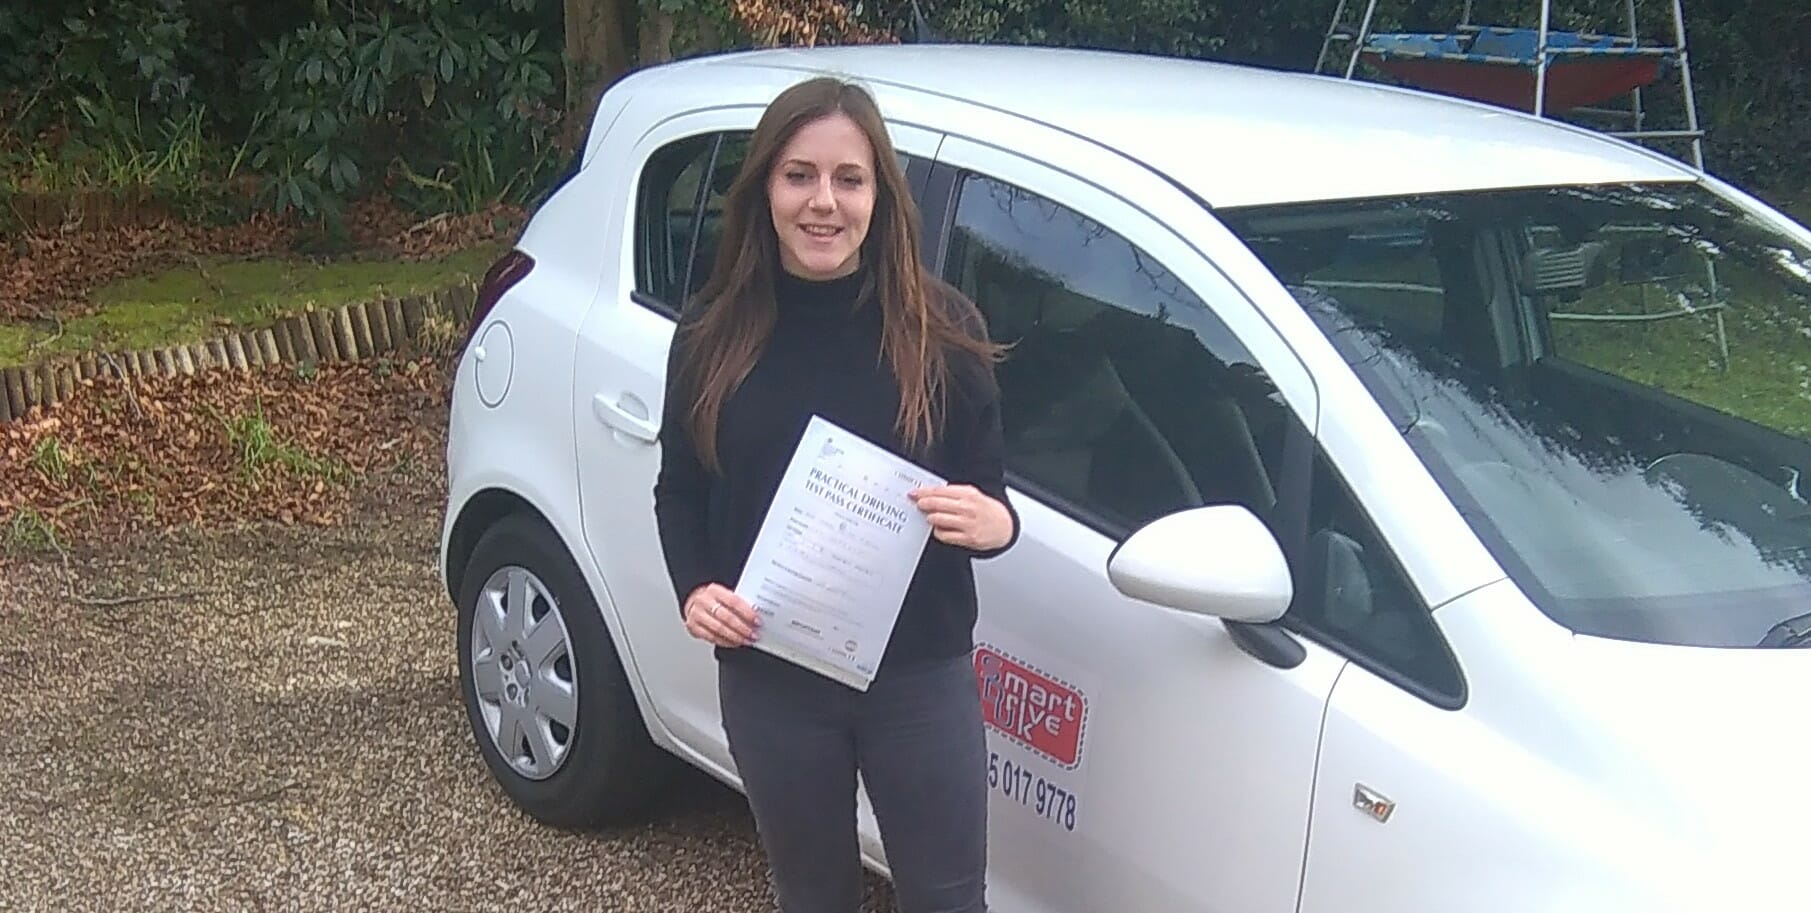 Congratulations to Caymen O'Reilly. First Time Pass!!